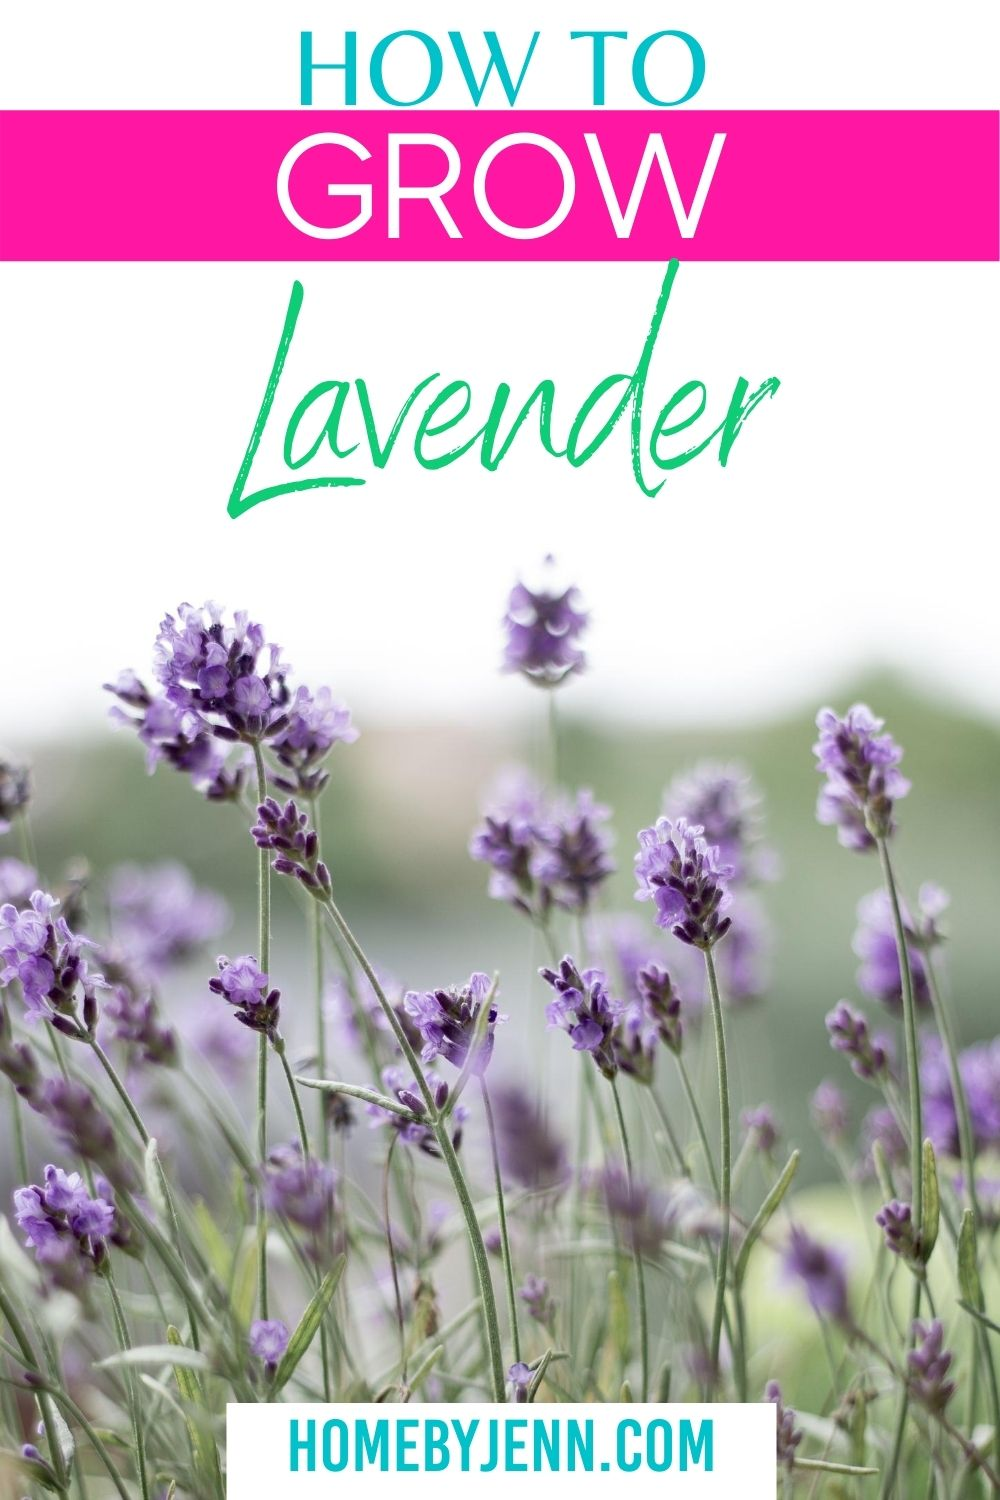 Learn how to grow lavender. You'll learn some great tips and tricks so you can enjoy lavender in your home garden. via @homebyjenn